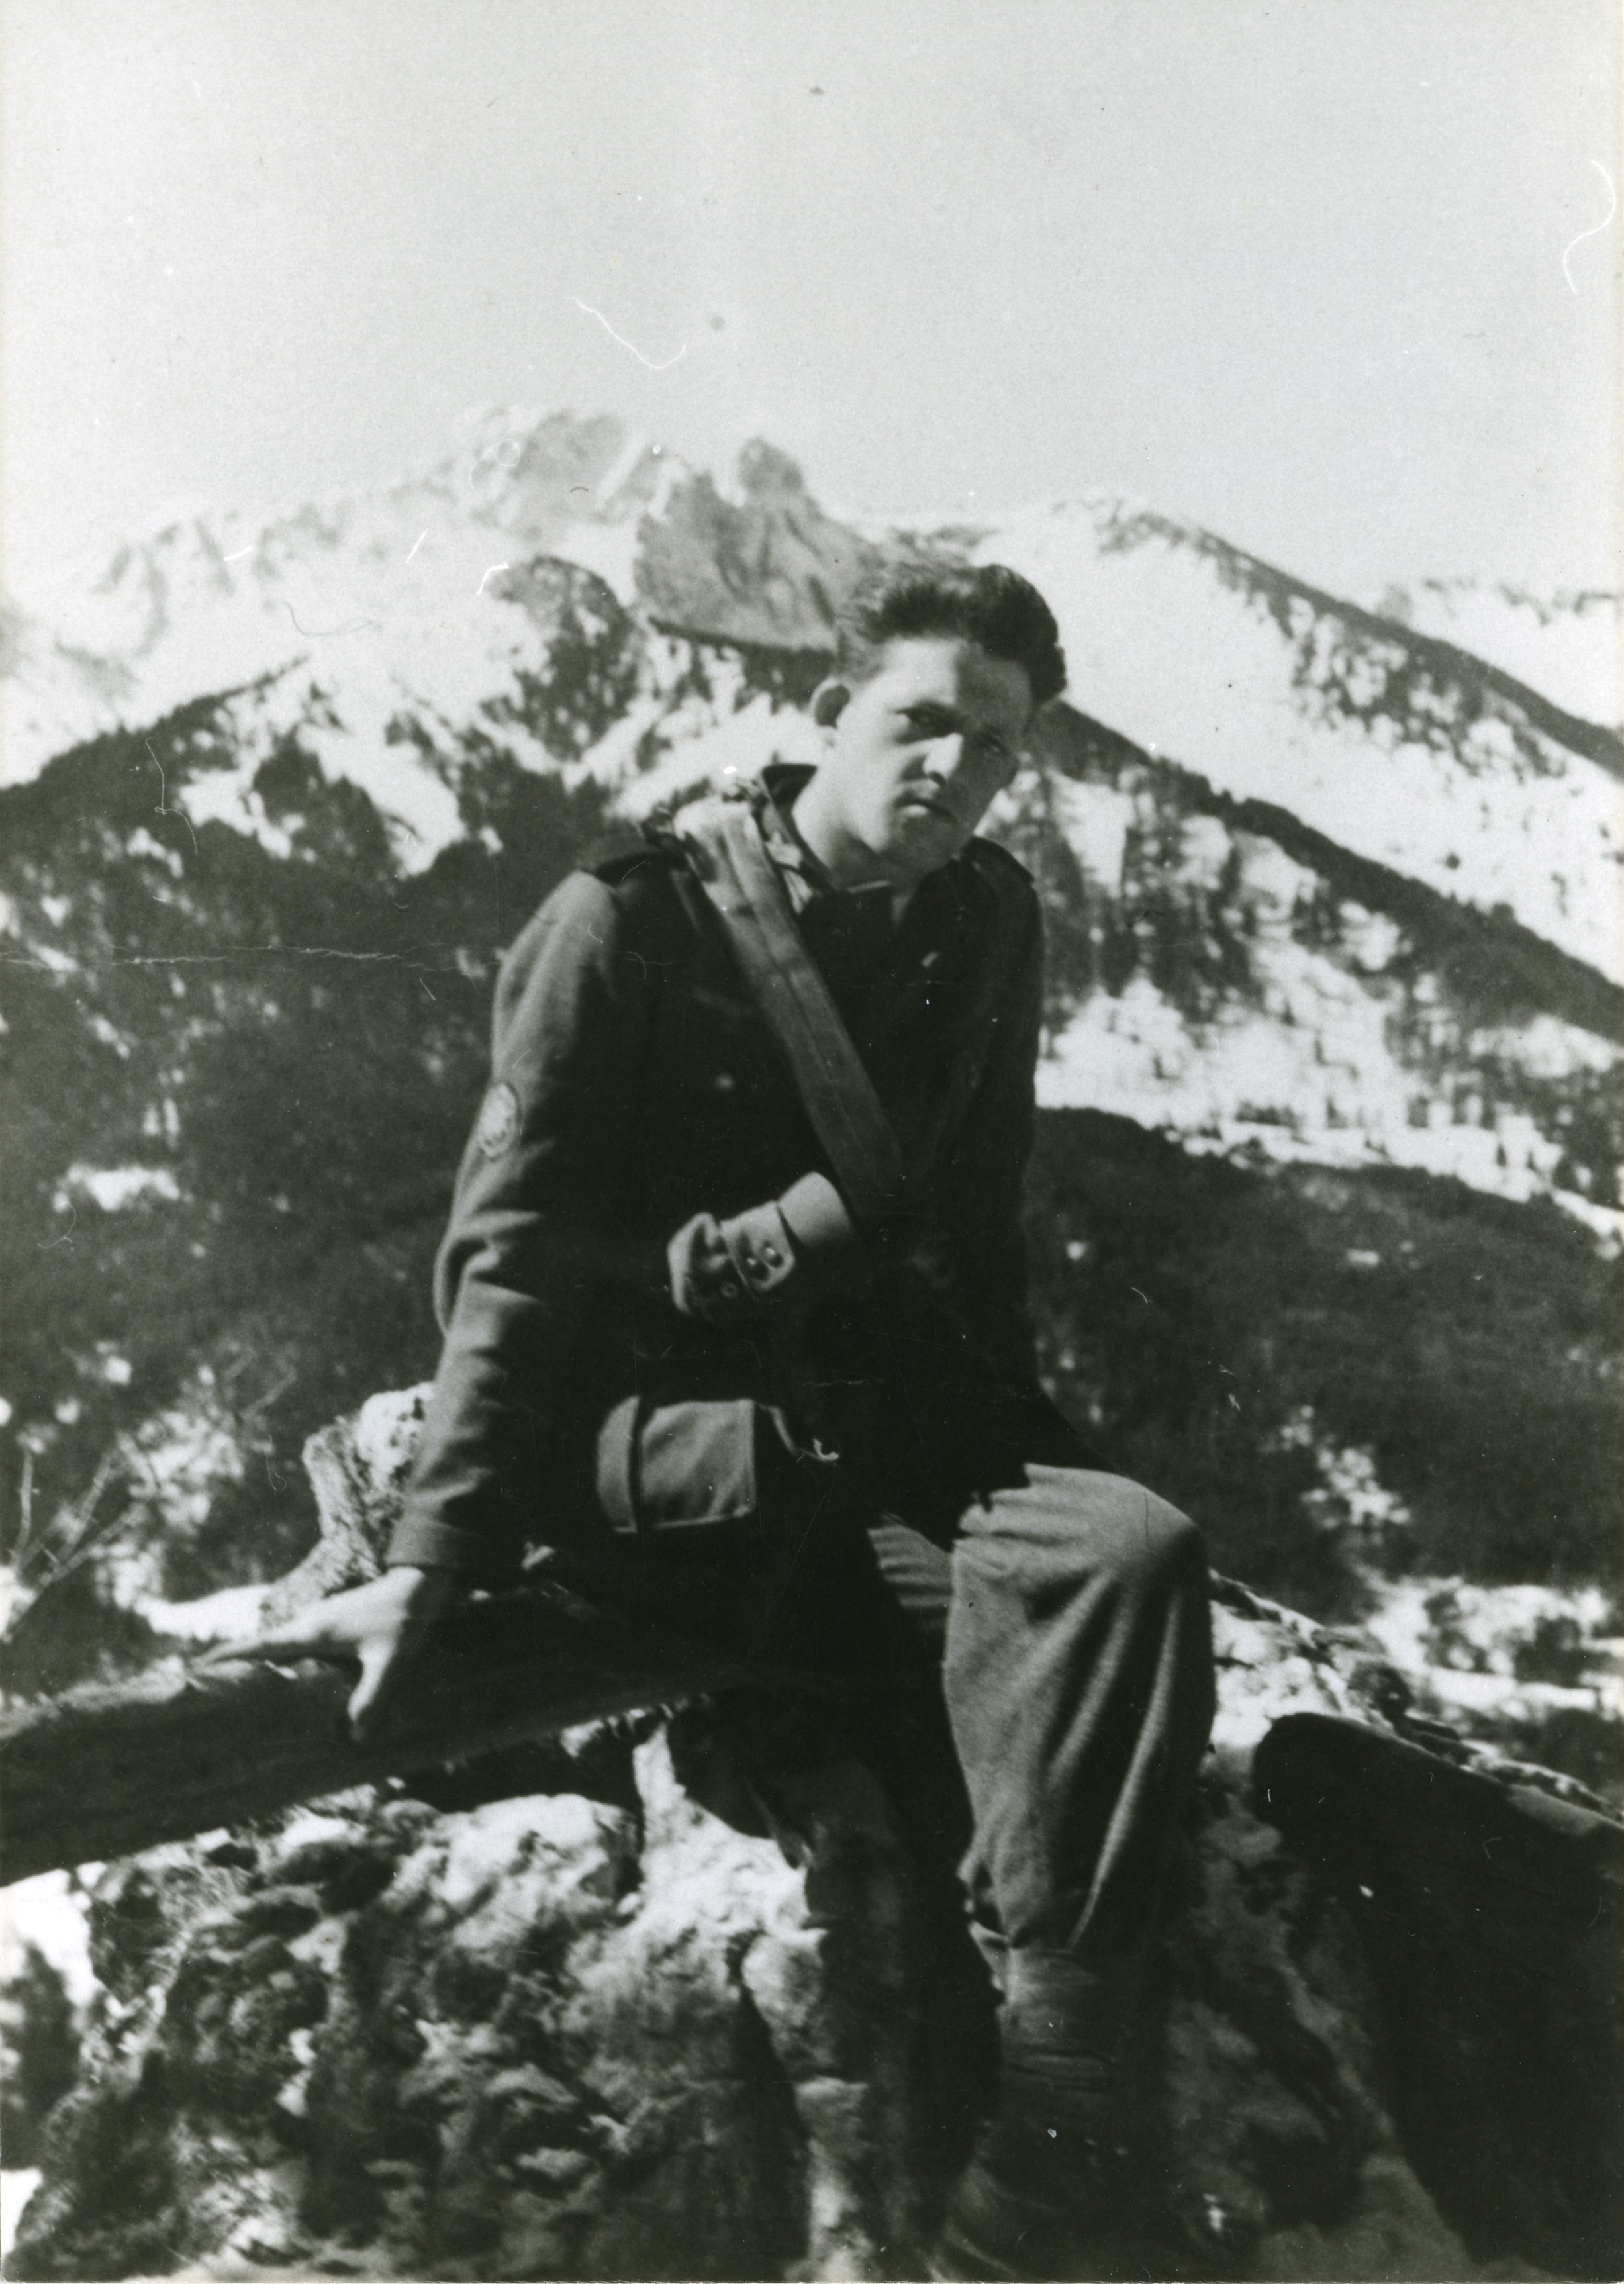 Franz Ofner<br>Photo: Archive of the Communist Party of Austria